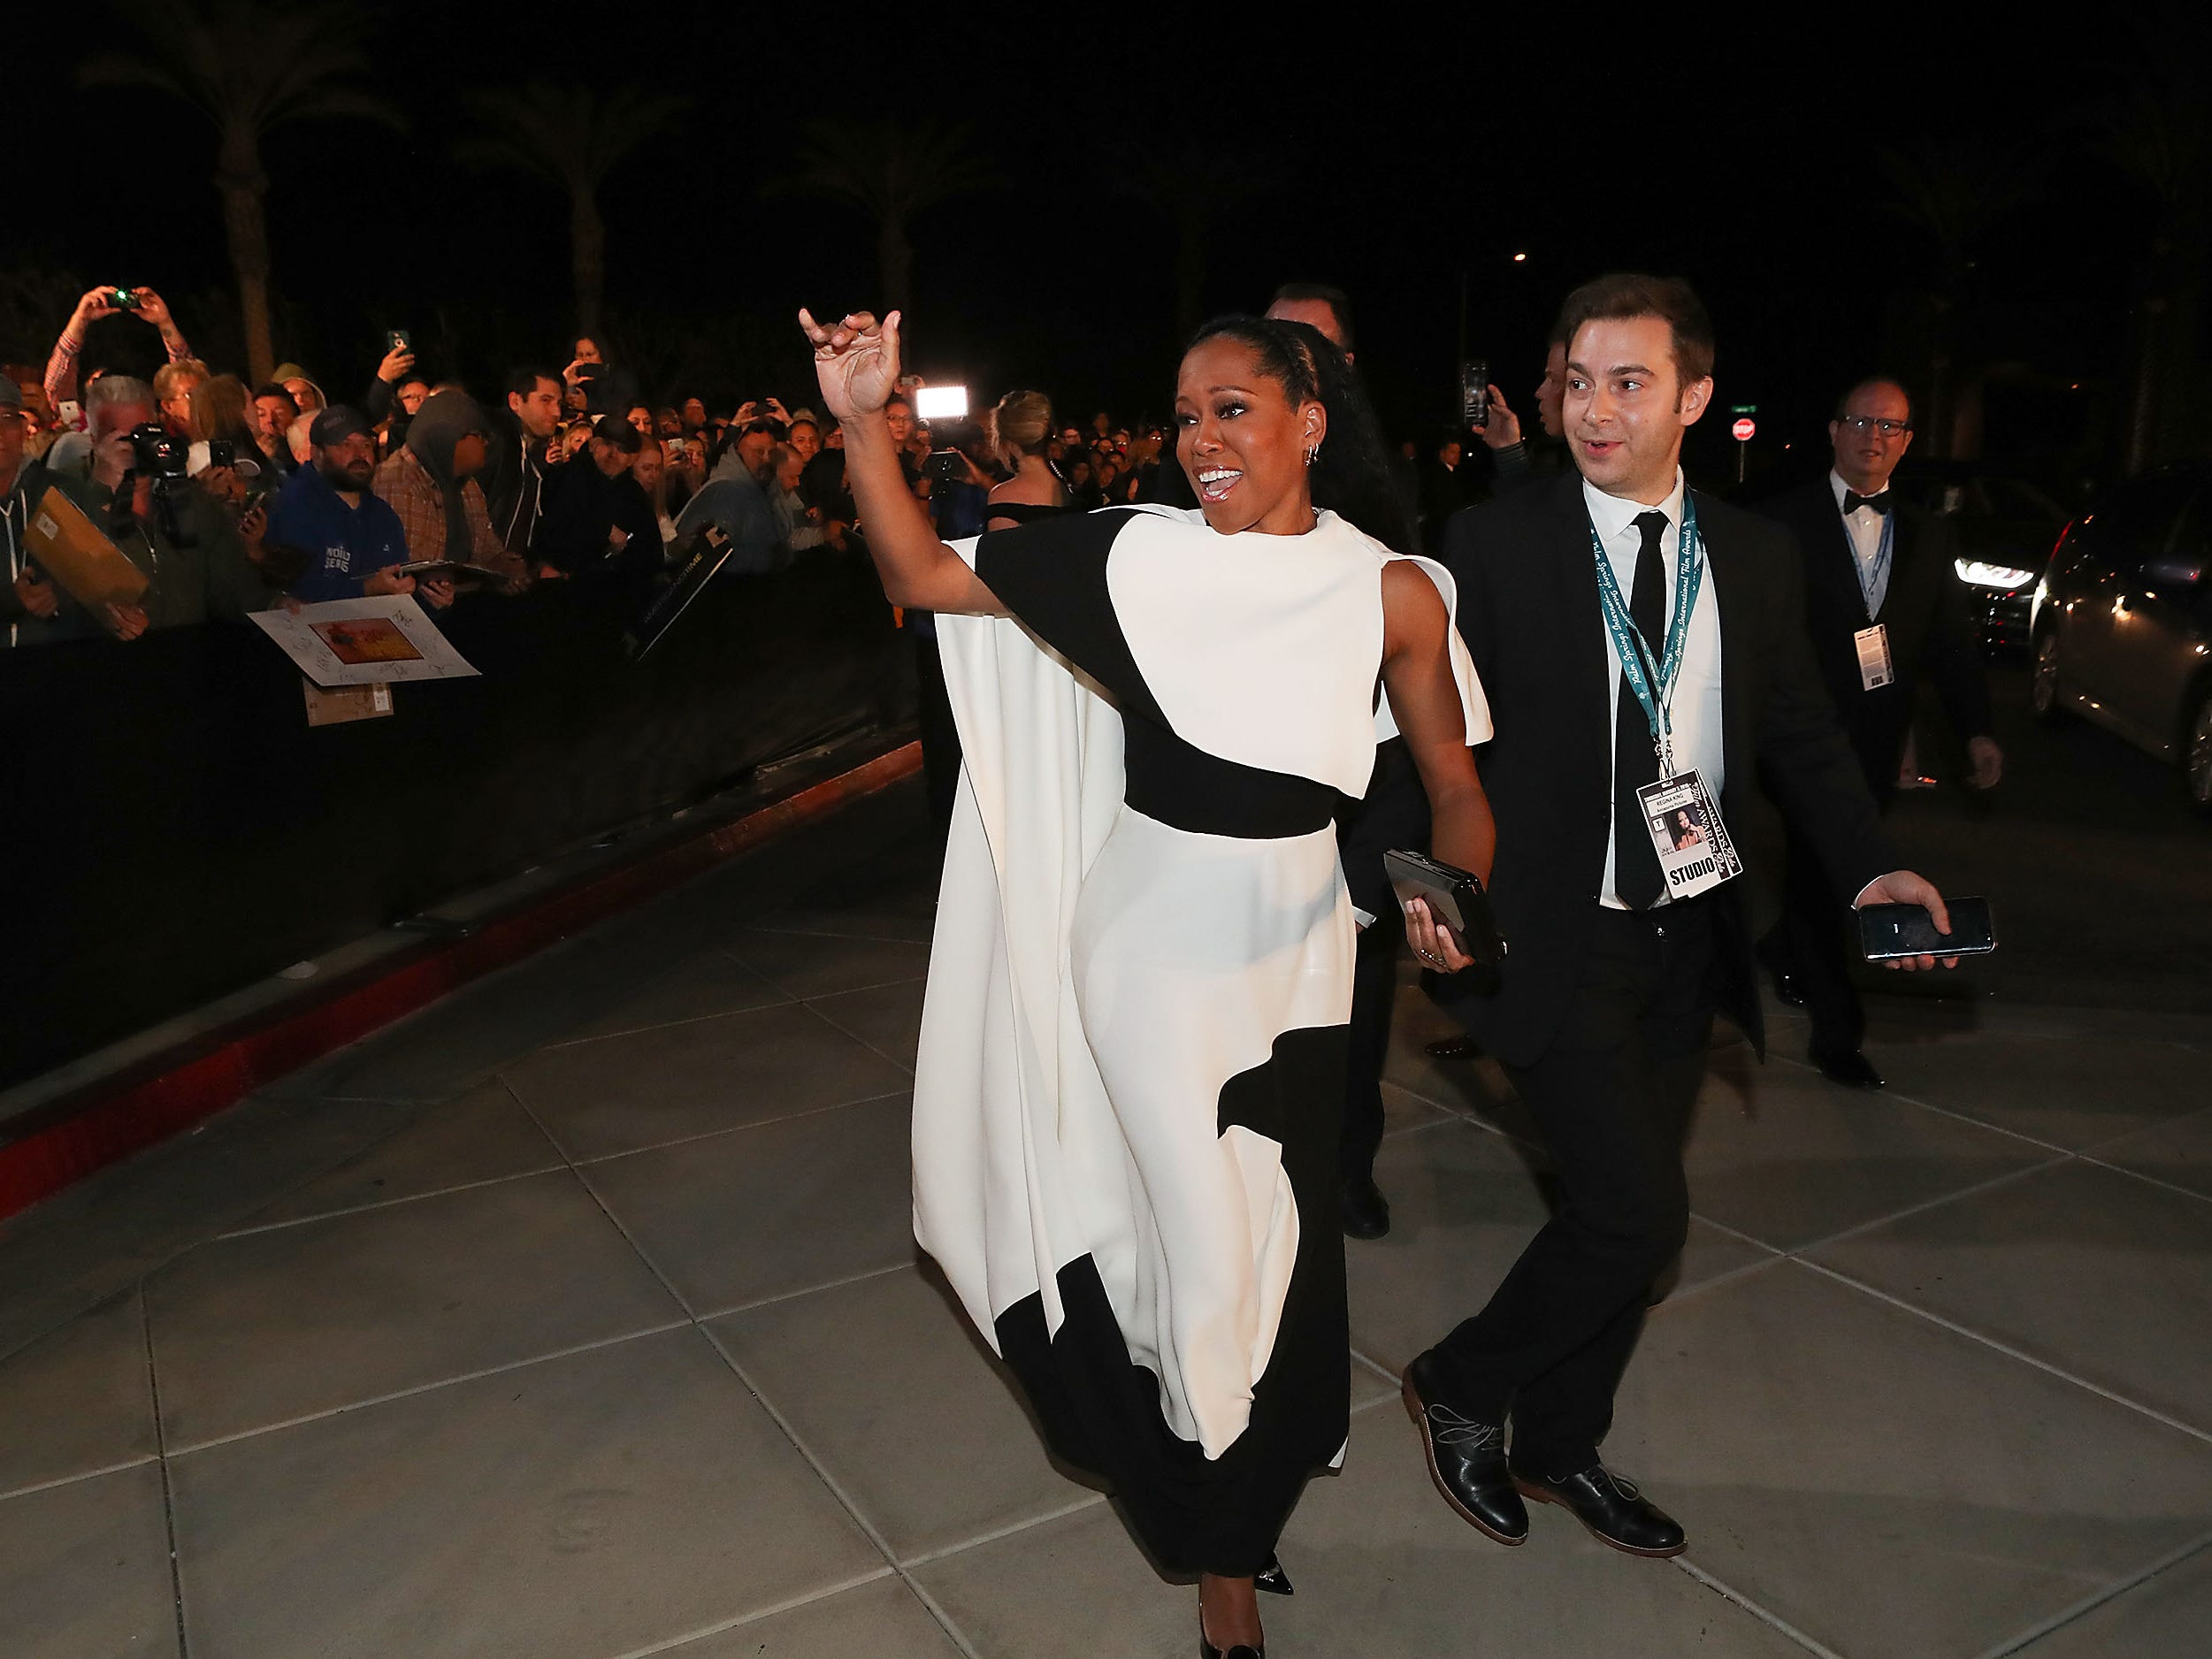 Regina King waves to fans at the Palm Springs International Film Festival Awards Gala, January 3, 2019.